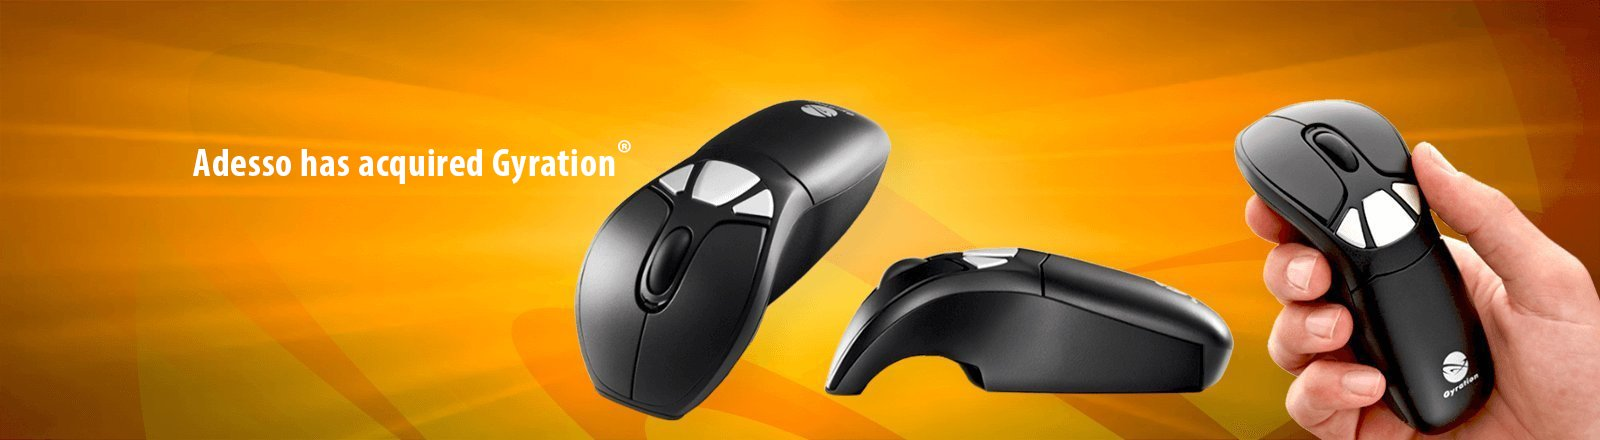 New - Air Mouse Presenter